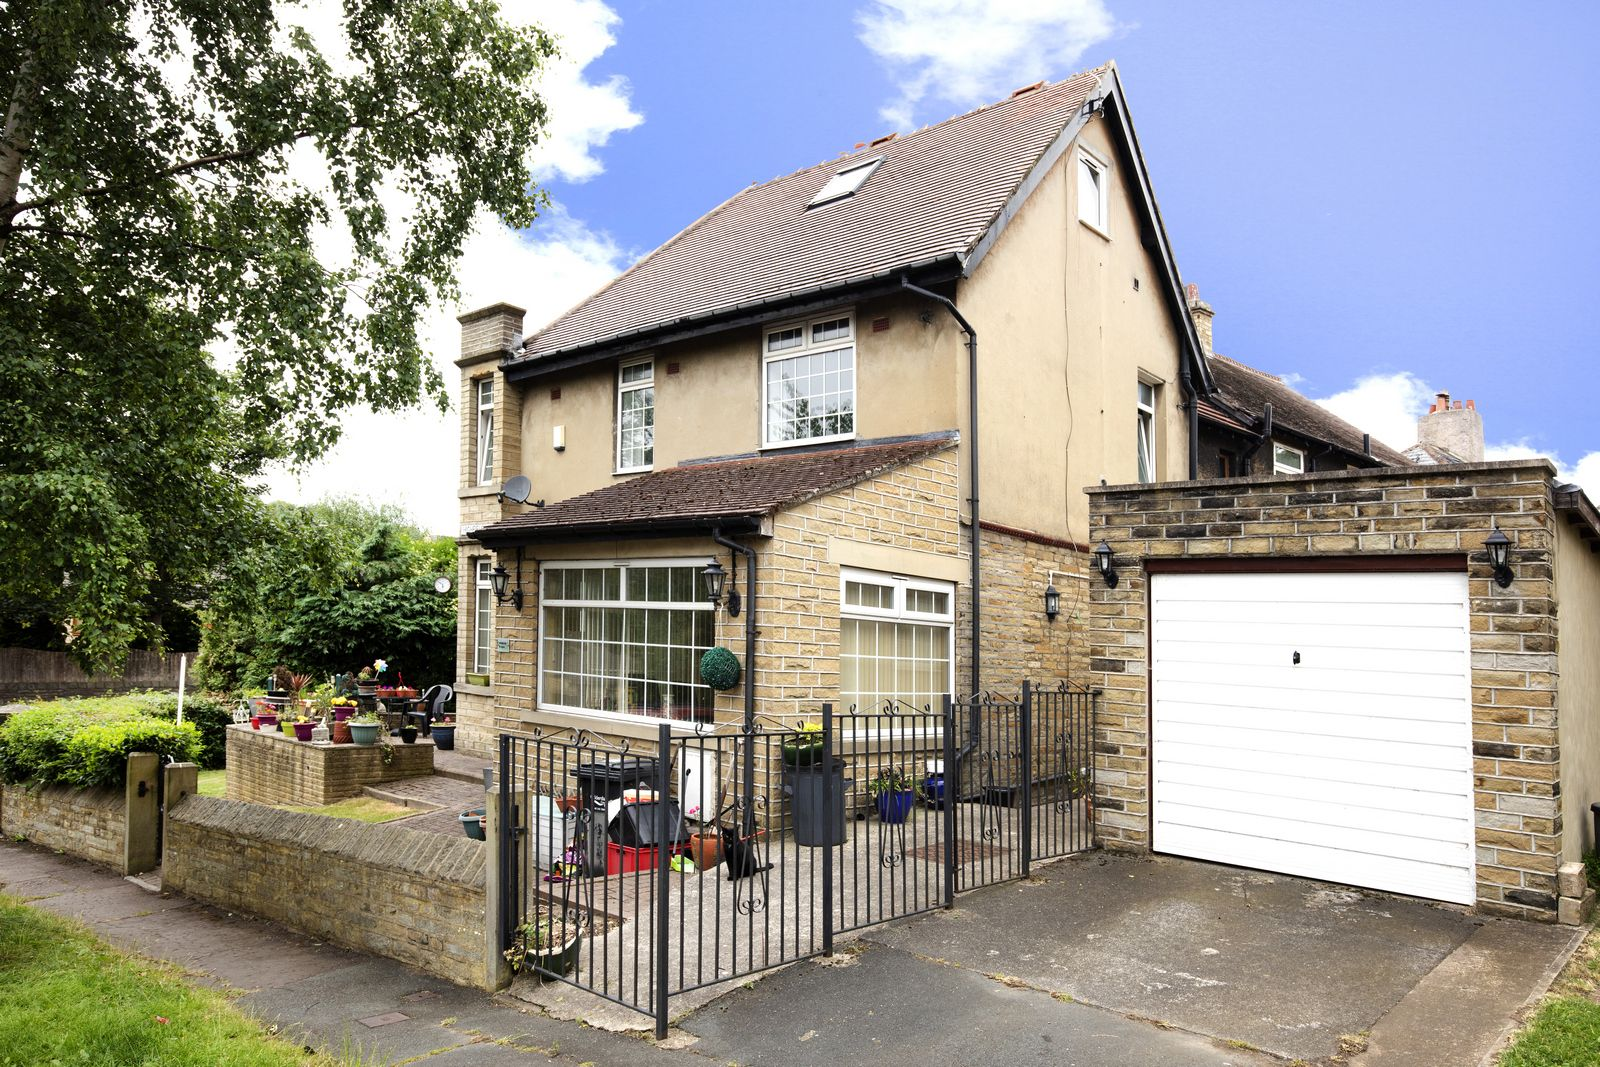 3 bedroom end terraced house For Sale in Bailiff Bridge - Photograph 1